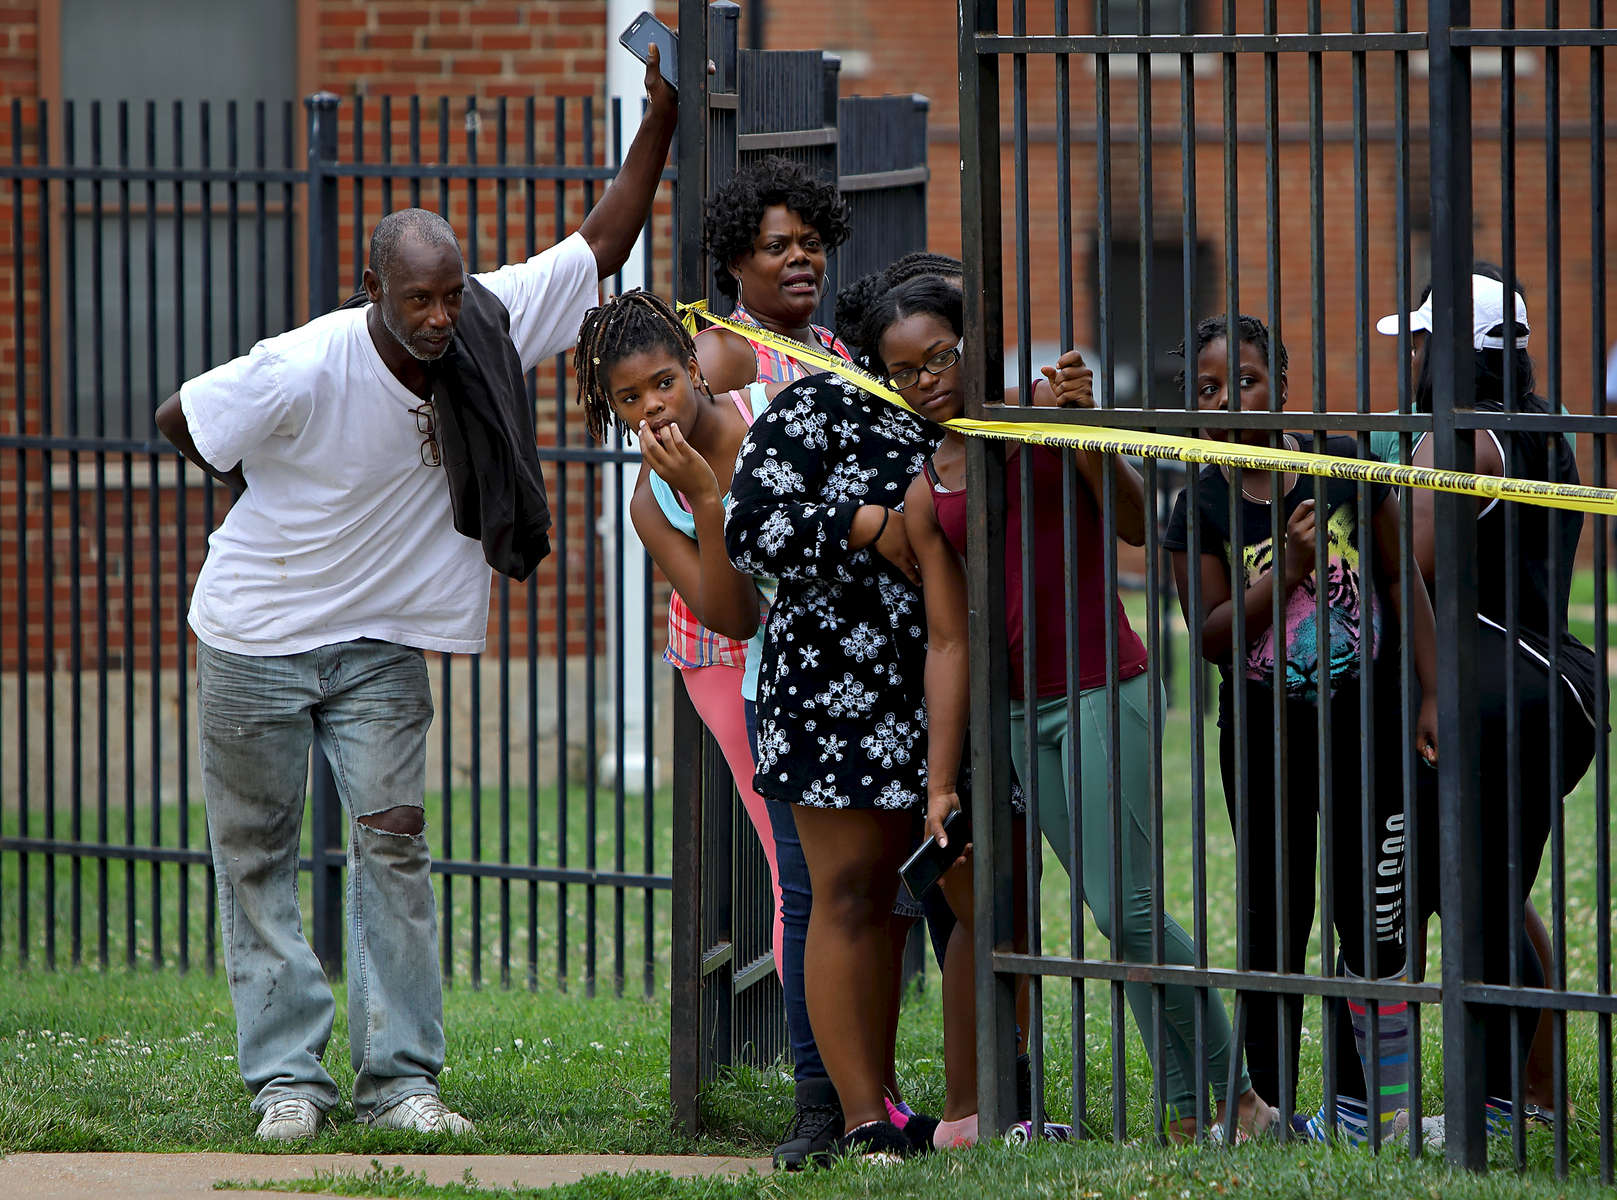 Residents watch as police investigate the scene of a fatal shooting in the 1400 block of Kealty Lane in St. Louis on Monday, Aug. 7, 2017. The suspect in the shooting returned to the shooting scene driving a minivan and surrendered to police.Photo by David Carson, dcarson@post-dispatch.com